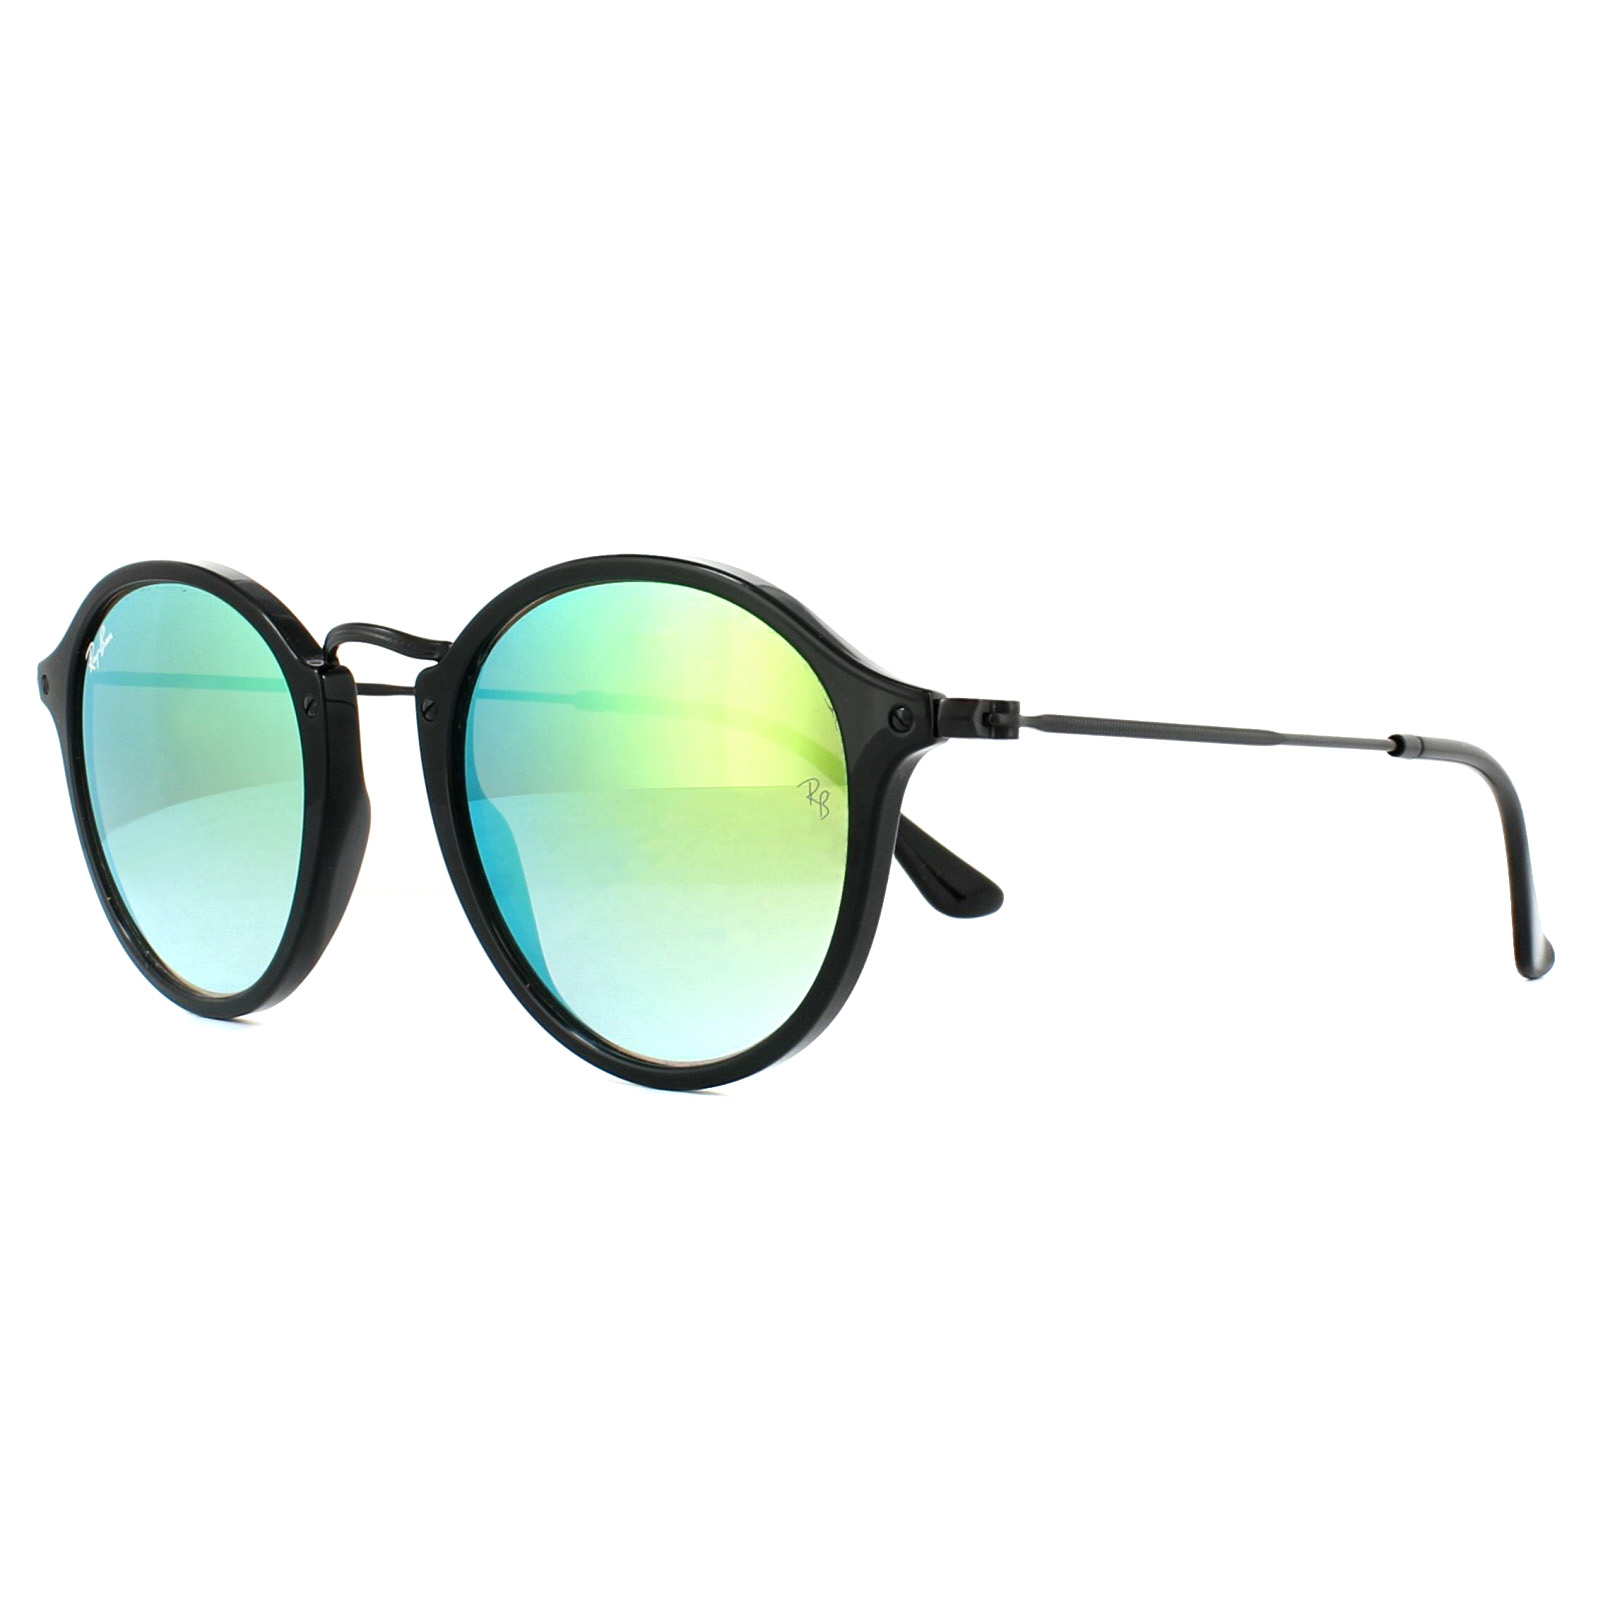 7140ee0ff8c4d Sentinel Ray-Ban Sunglasses Round Fleck 2447 901 4J Black Green Gradient  Mirror 49mm